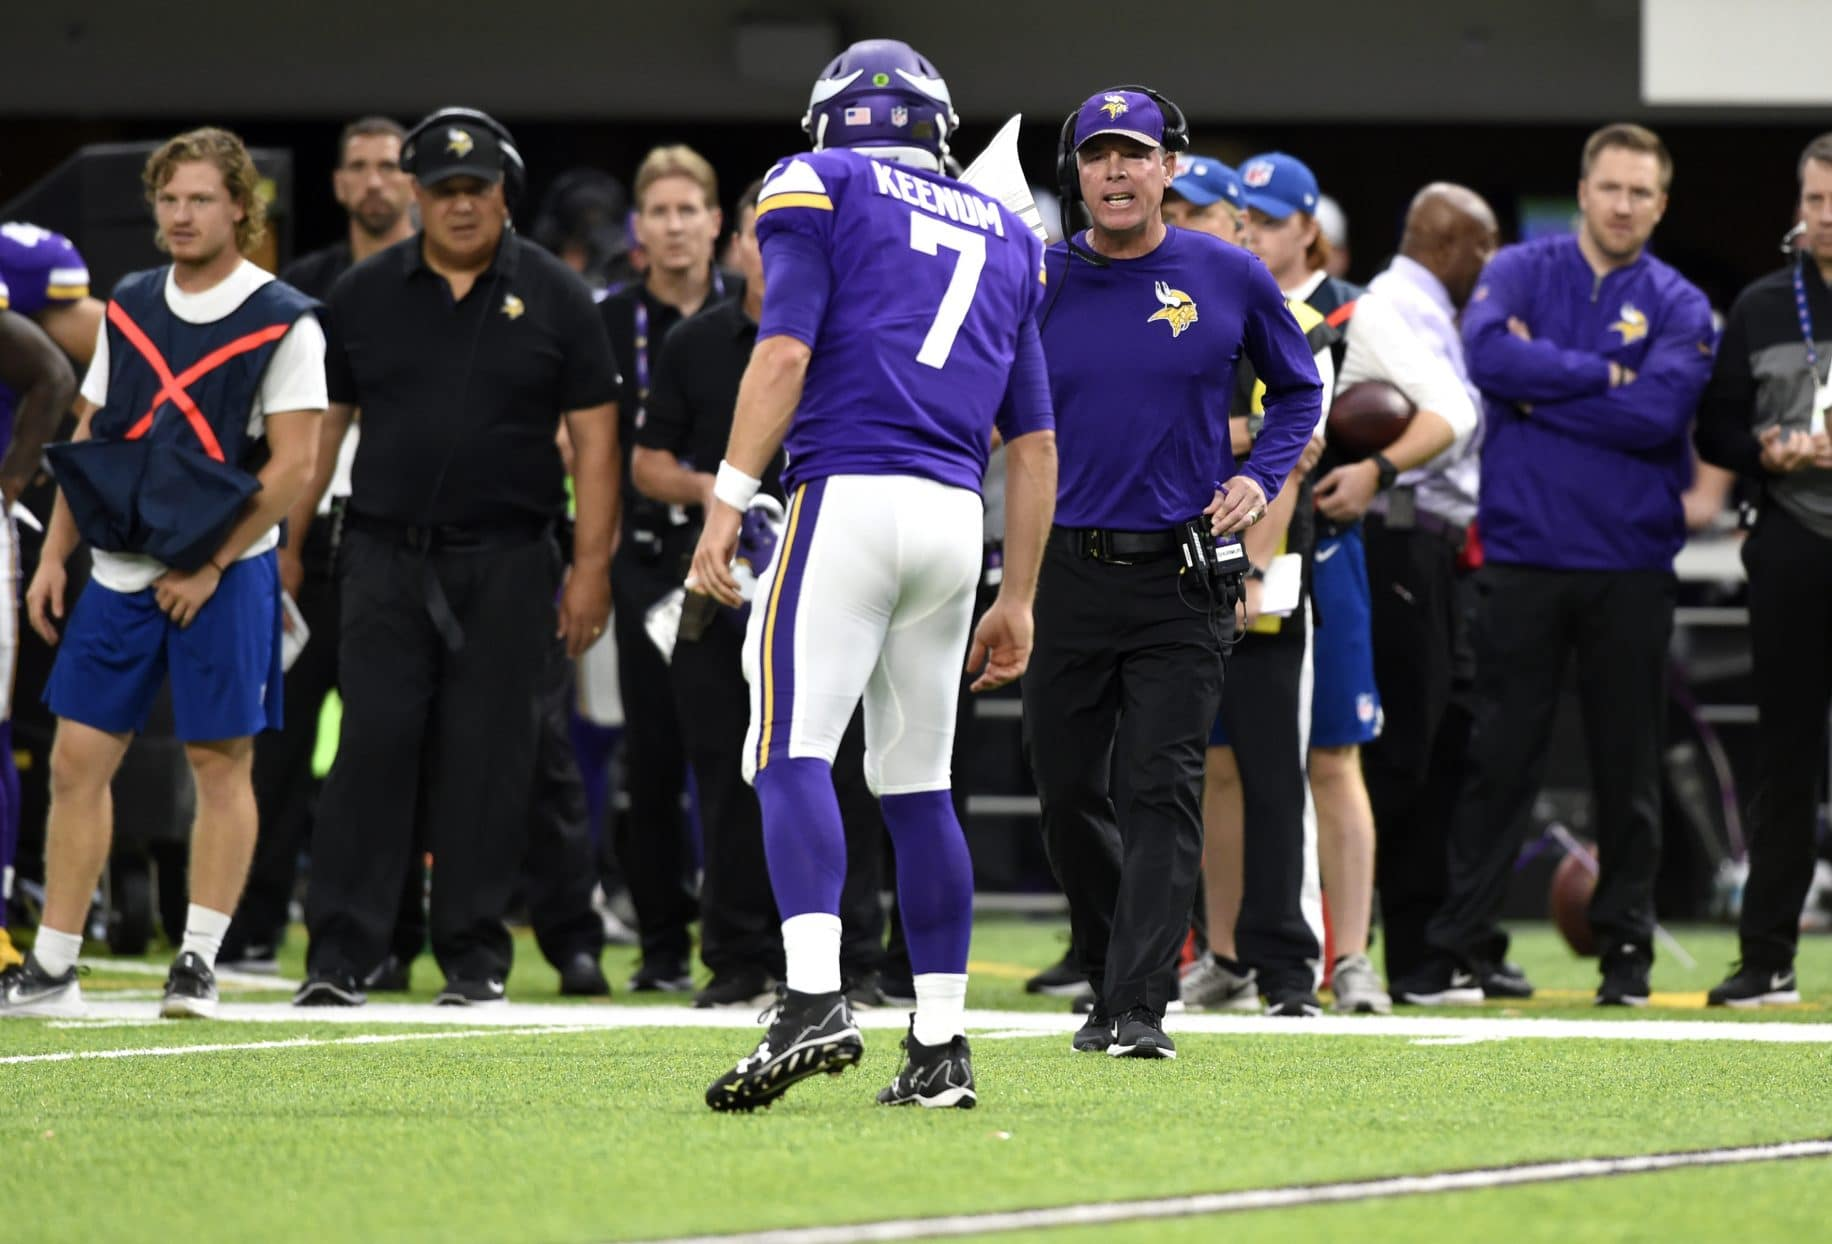 MINNEAPOLIS, MN - OCTOBER 1: Case Keenum #7 of the Minnesota Vikings speaks with offensive coordinator Pat Shurmur in the second quarter of the game against the Detroit Lions on October 1, 2017 at U.S. Bank Stadium in Minneapolis, Minnesota.